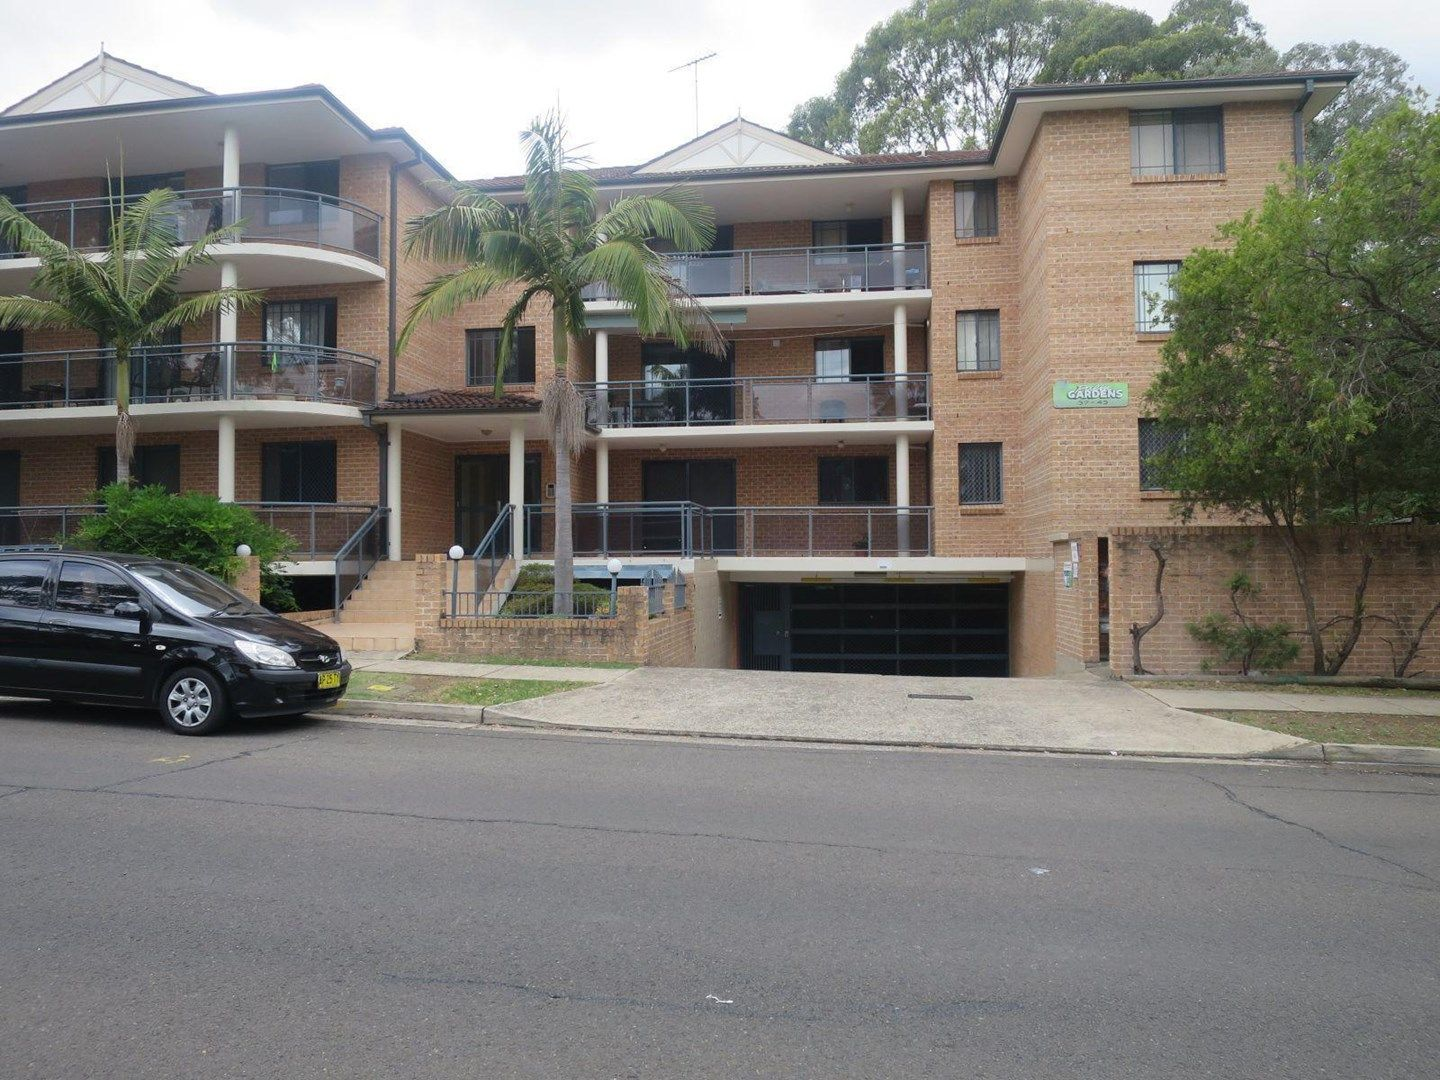 20/37 Sir Joseph Banks Street, Bankstown NSW 2200, Image 0